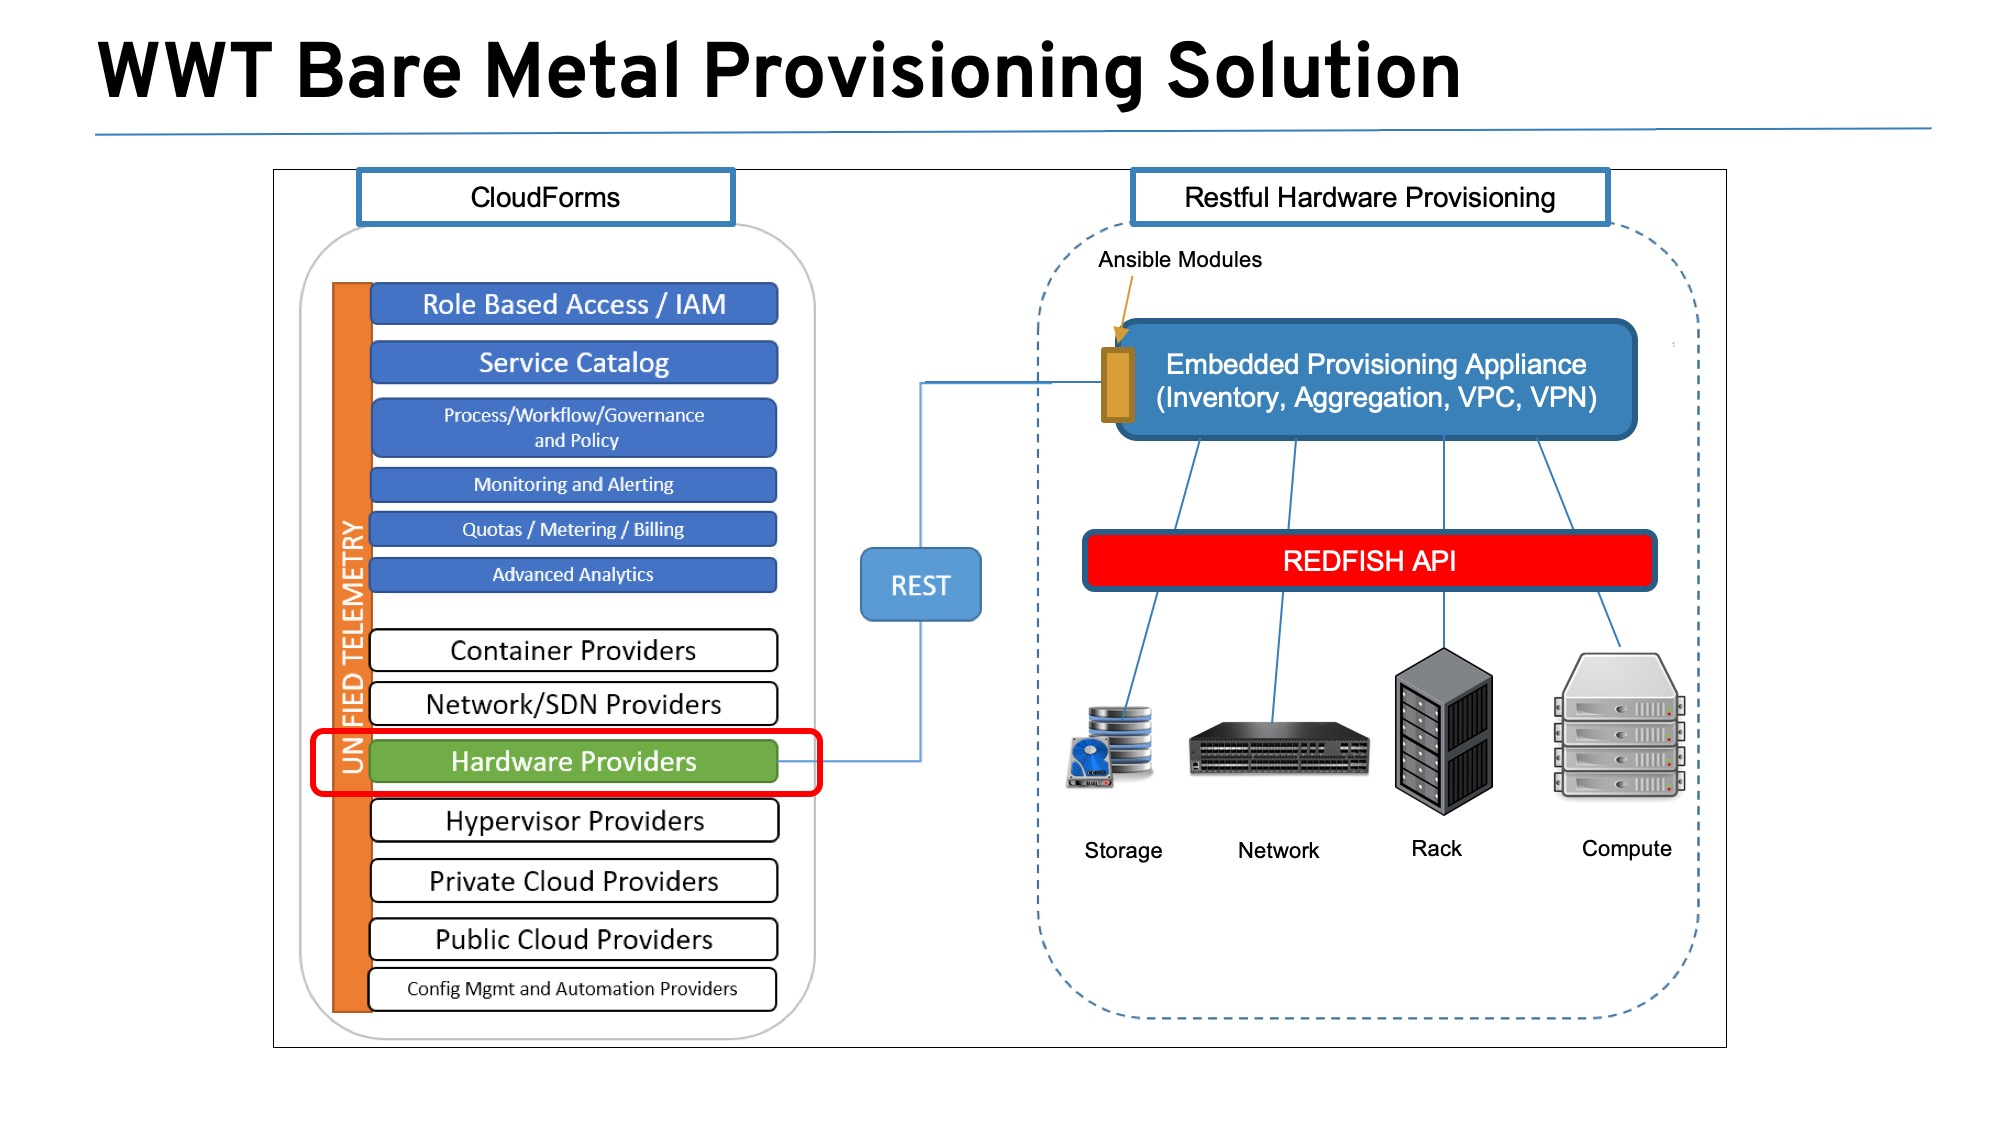 An architectural view of WWT's Bare Metal Provisioning Solution.